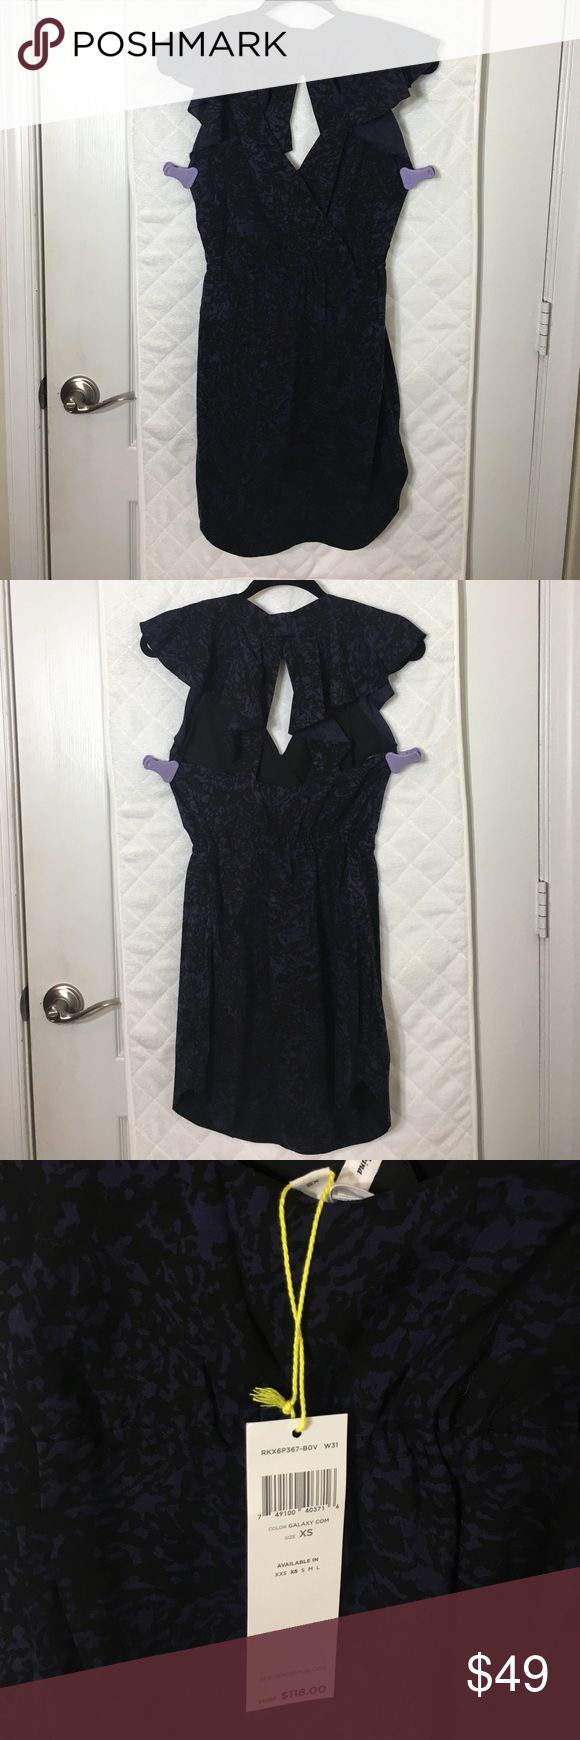 NEW NWT! BCBG Summer Galaxy Dress XS NWT PERFECT FOR SPRING & SUMMER! Black and Navy (Galaxy) with Halter Back Straps XS BCBGeneration Style: RKX6P367-BOV BCBG Dresses Mini